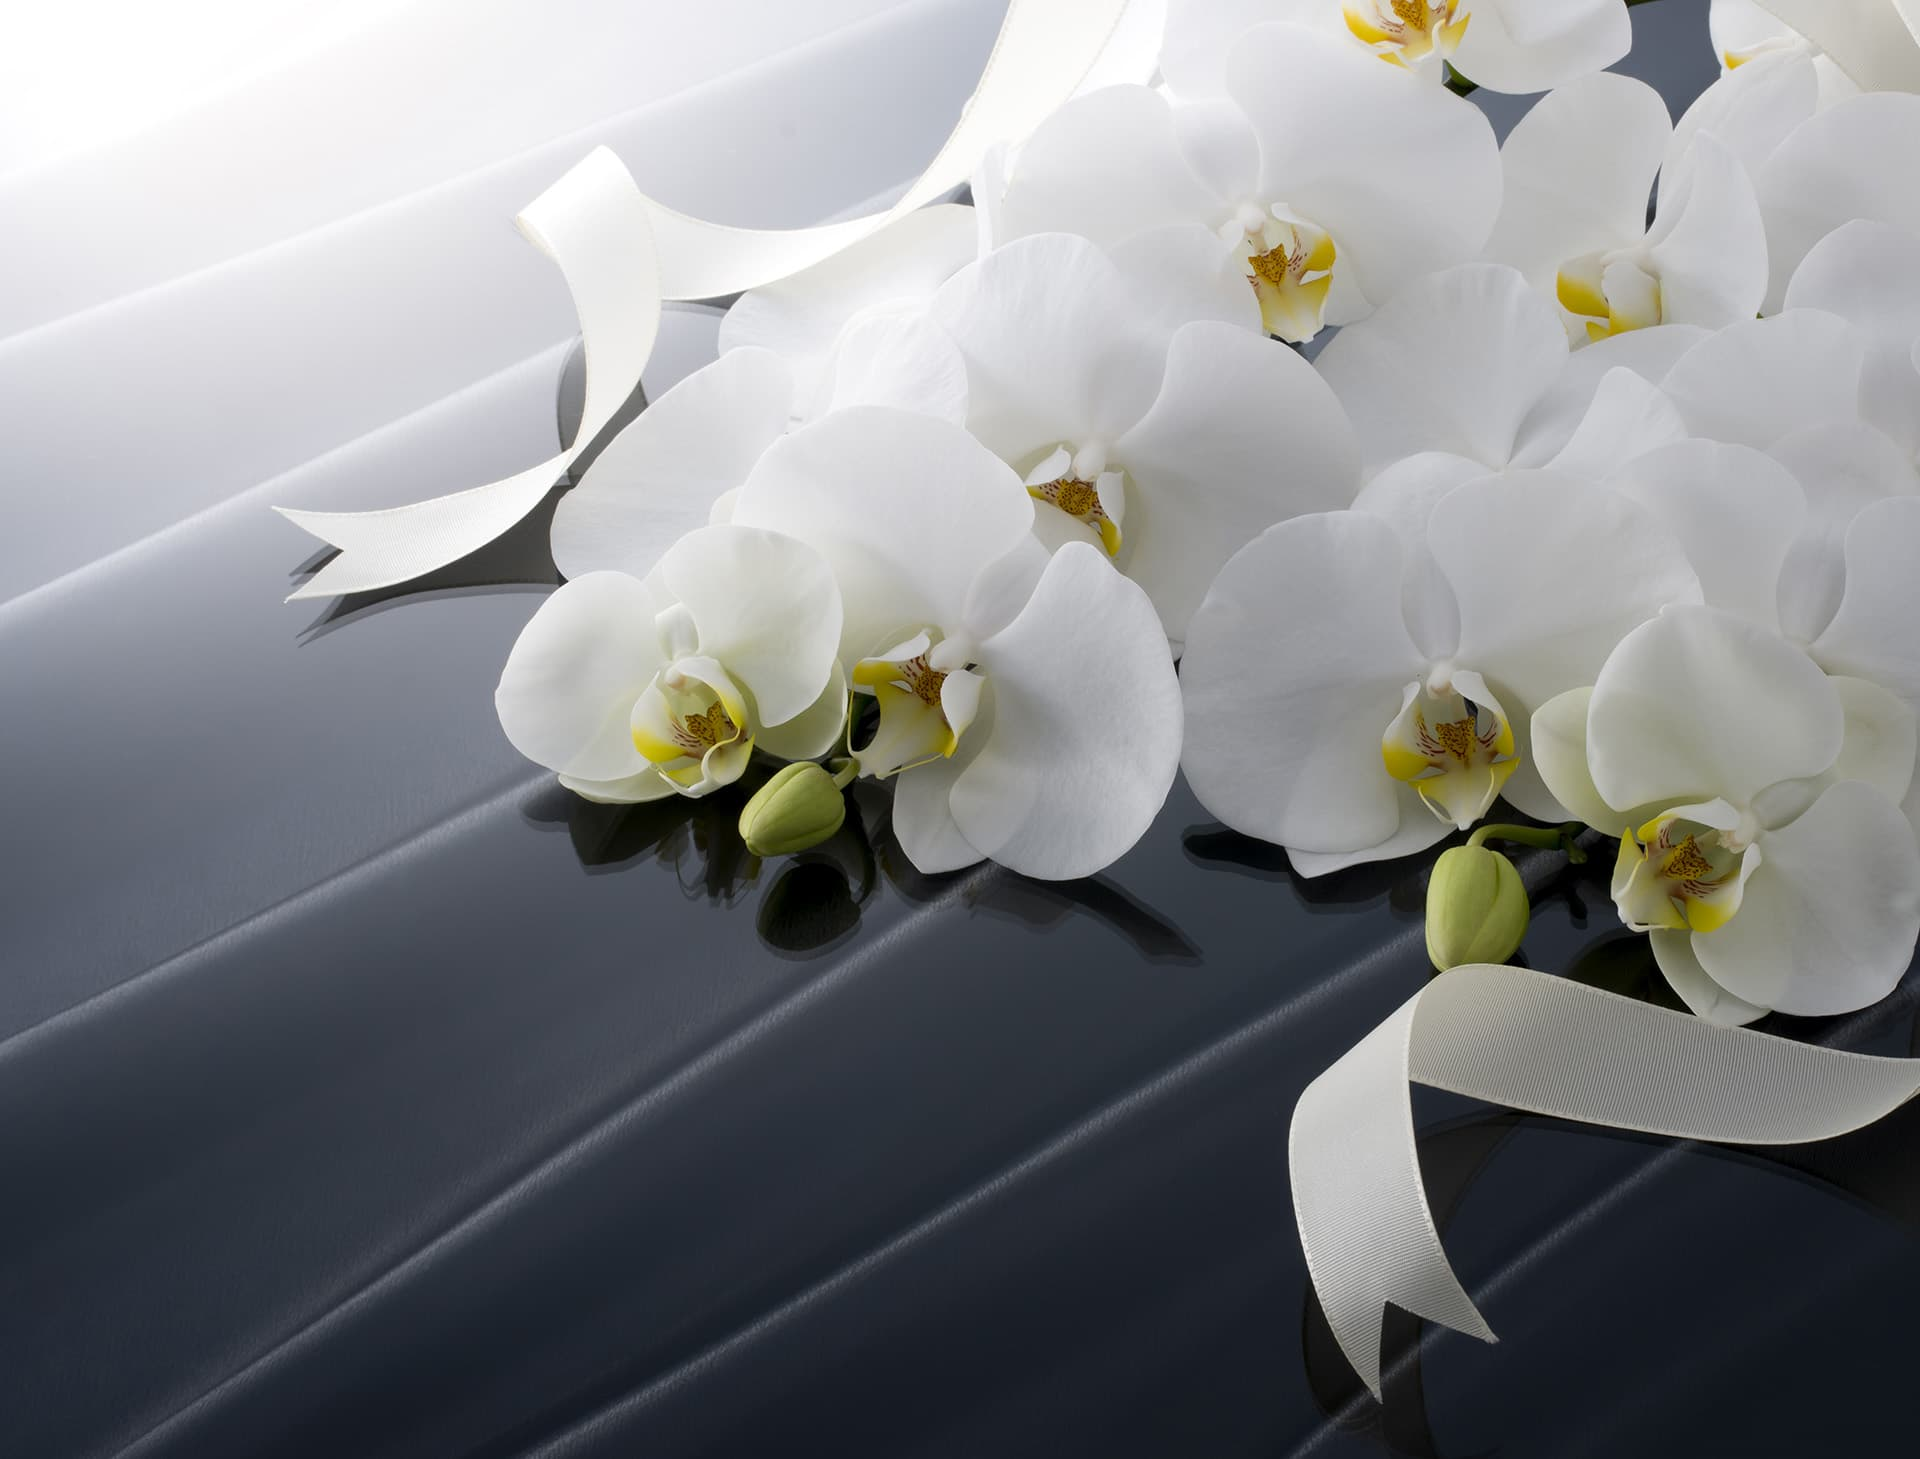 Funeral home insurance with white orchids on a dark casket